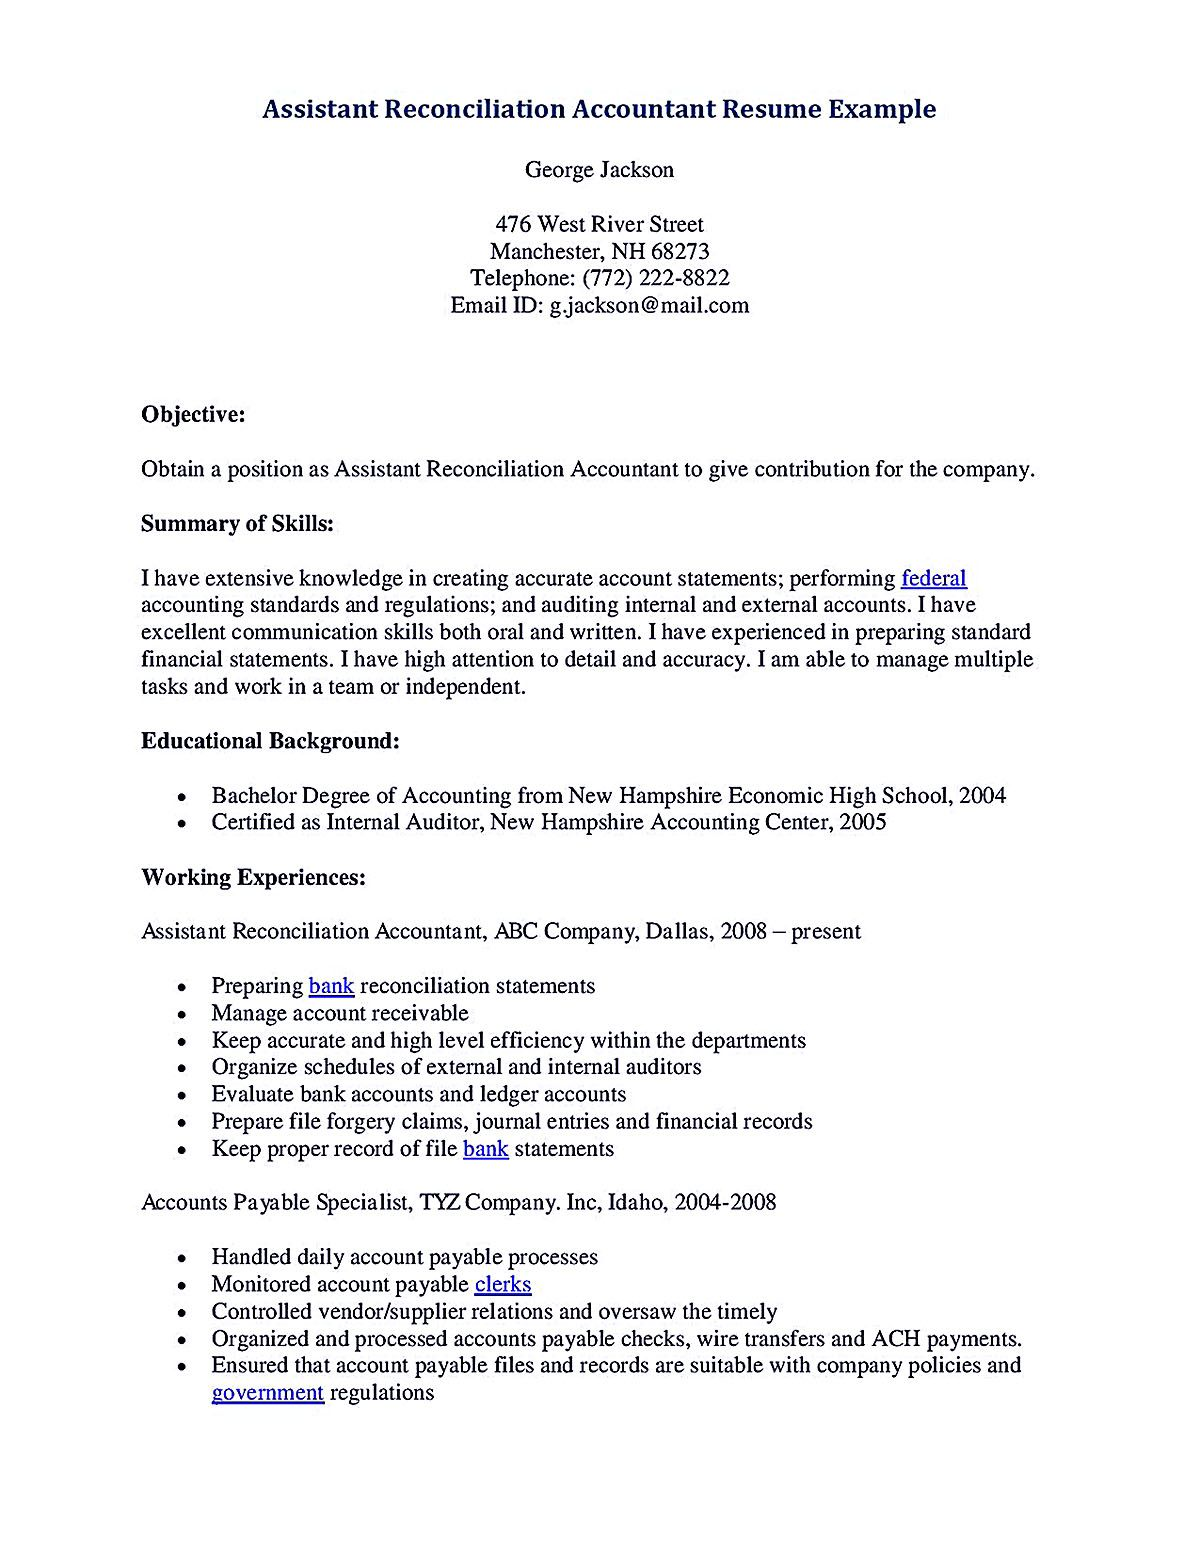 resume for accounting assistant Whether or not accounting assistant ...